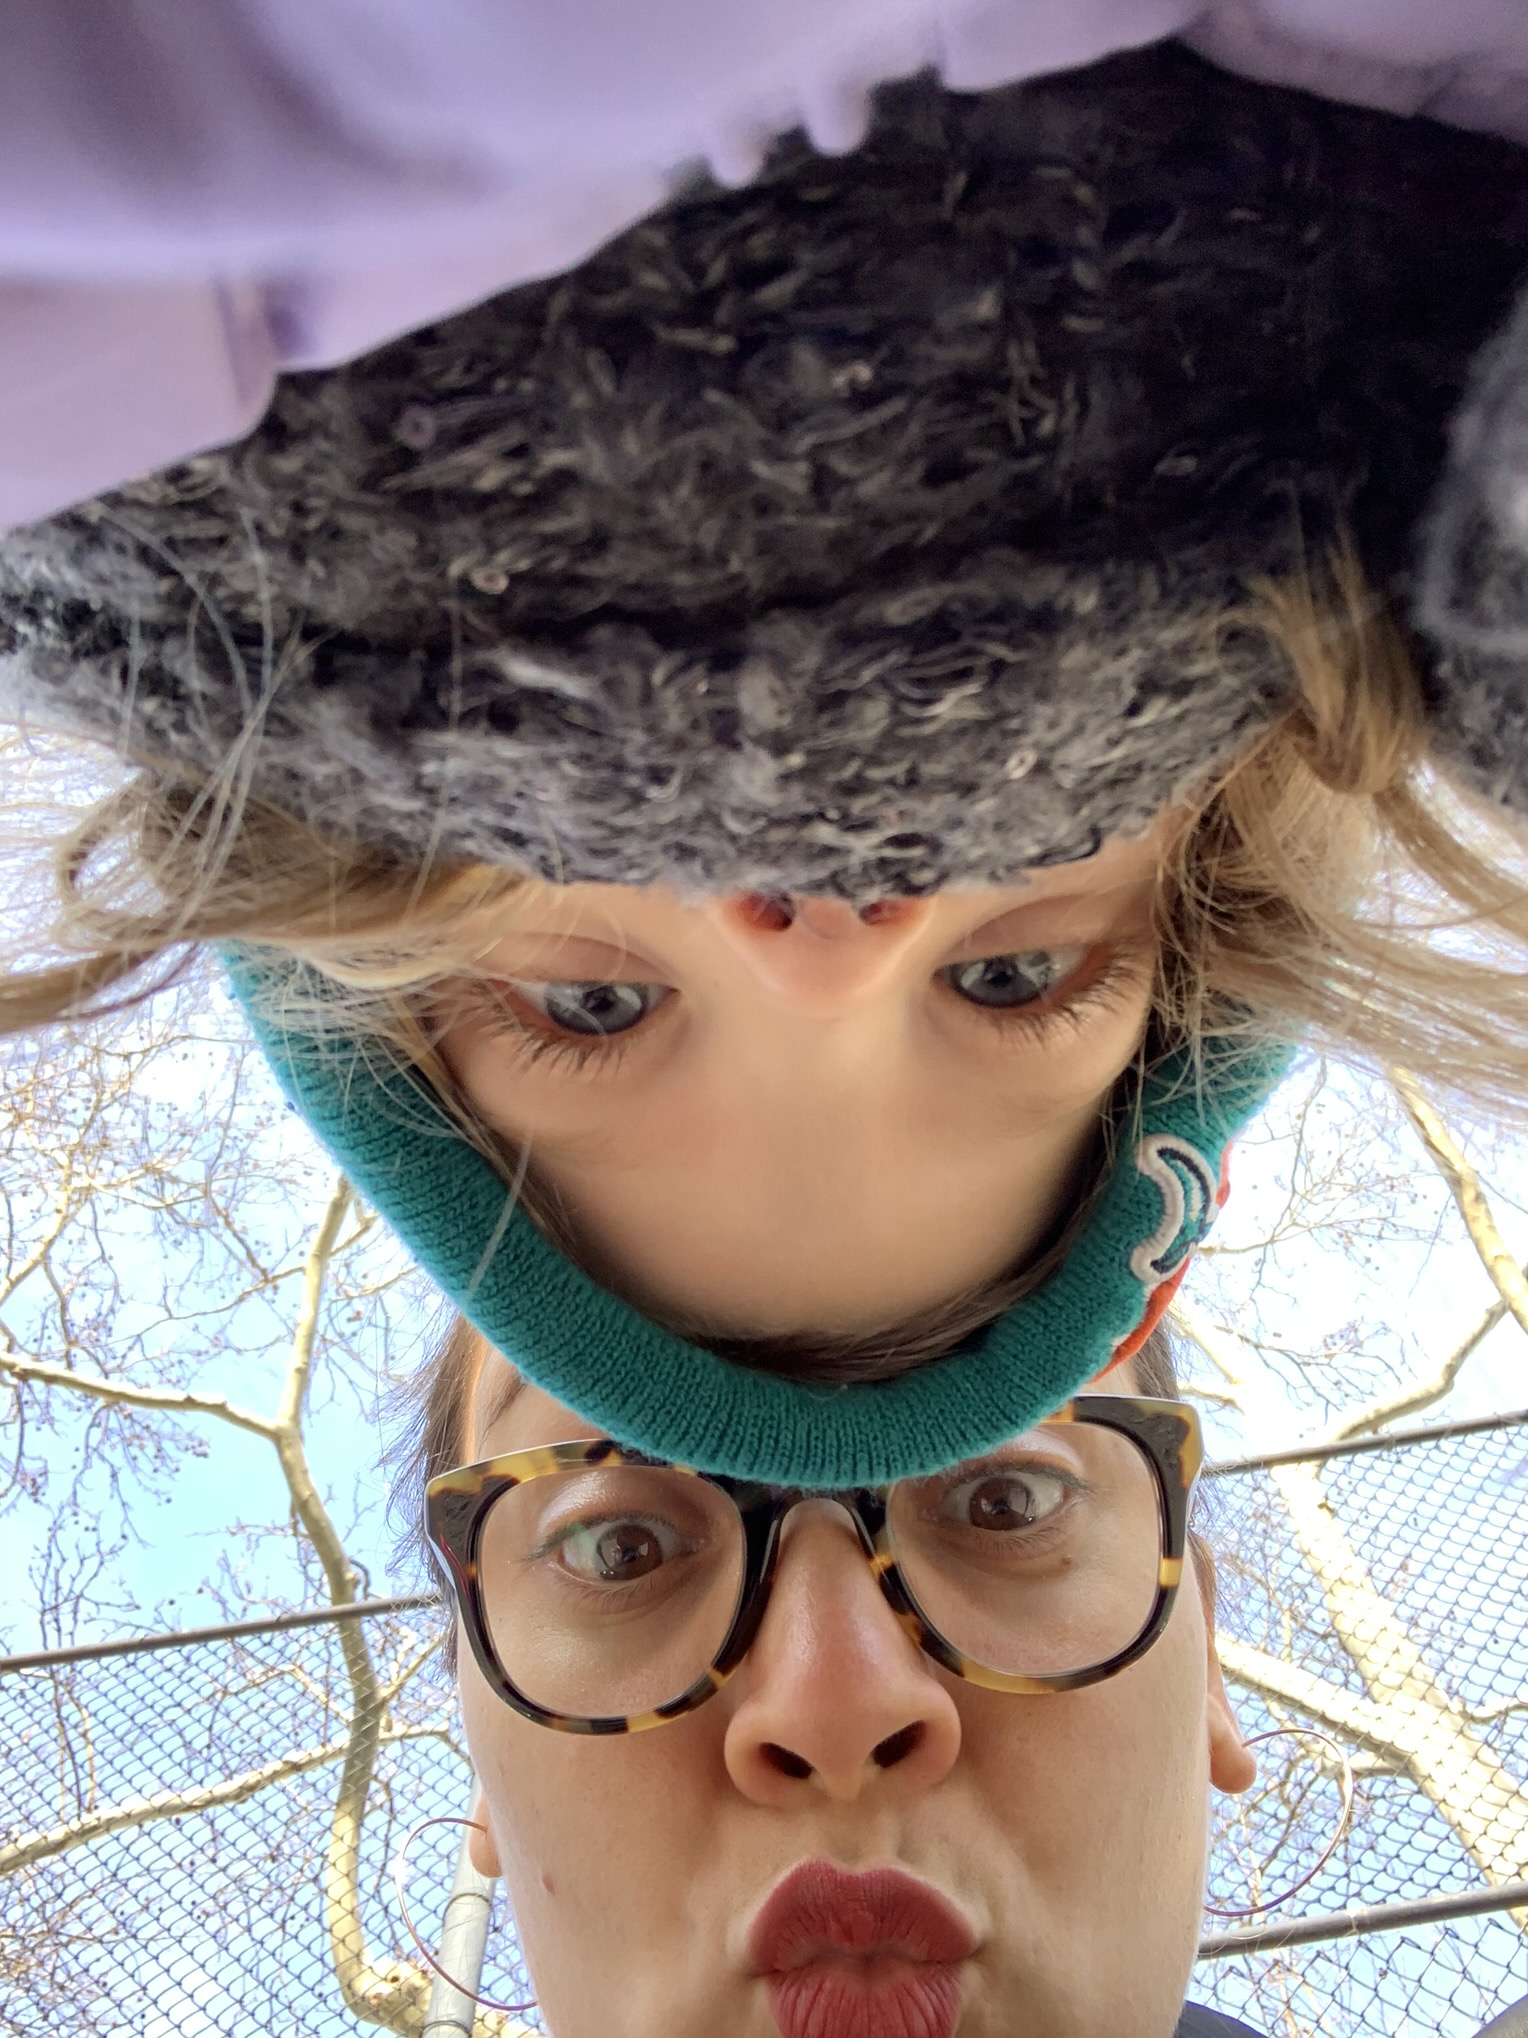 Silly pictures on a nice day, watching Daddy-O lead a Super Bowl clinic.